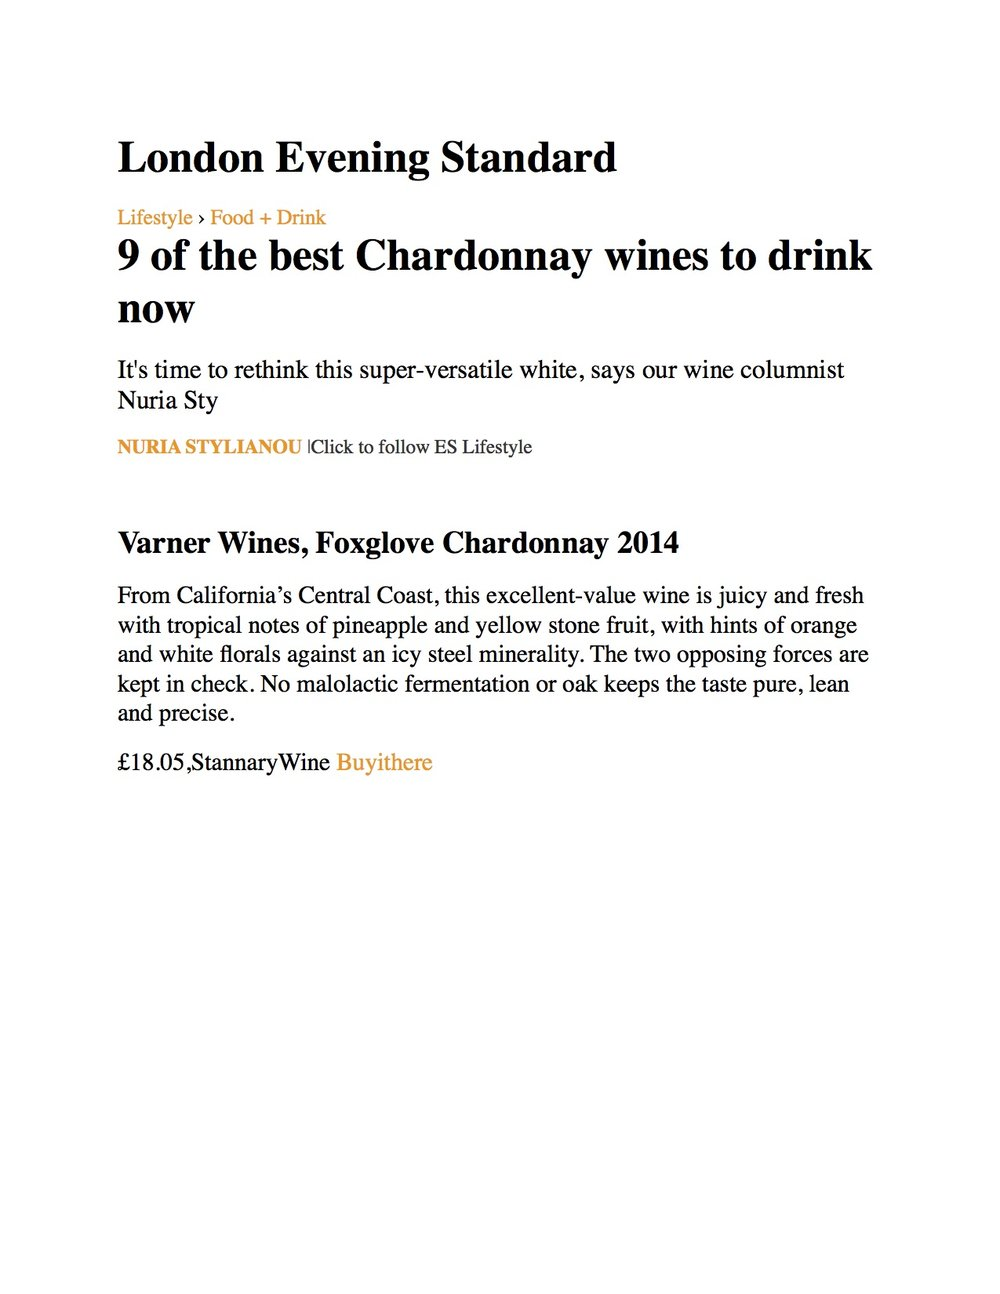 2014 Foxglove Chardonnay - London Evening Standard.jpg